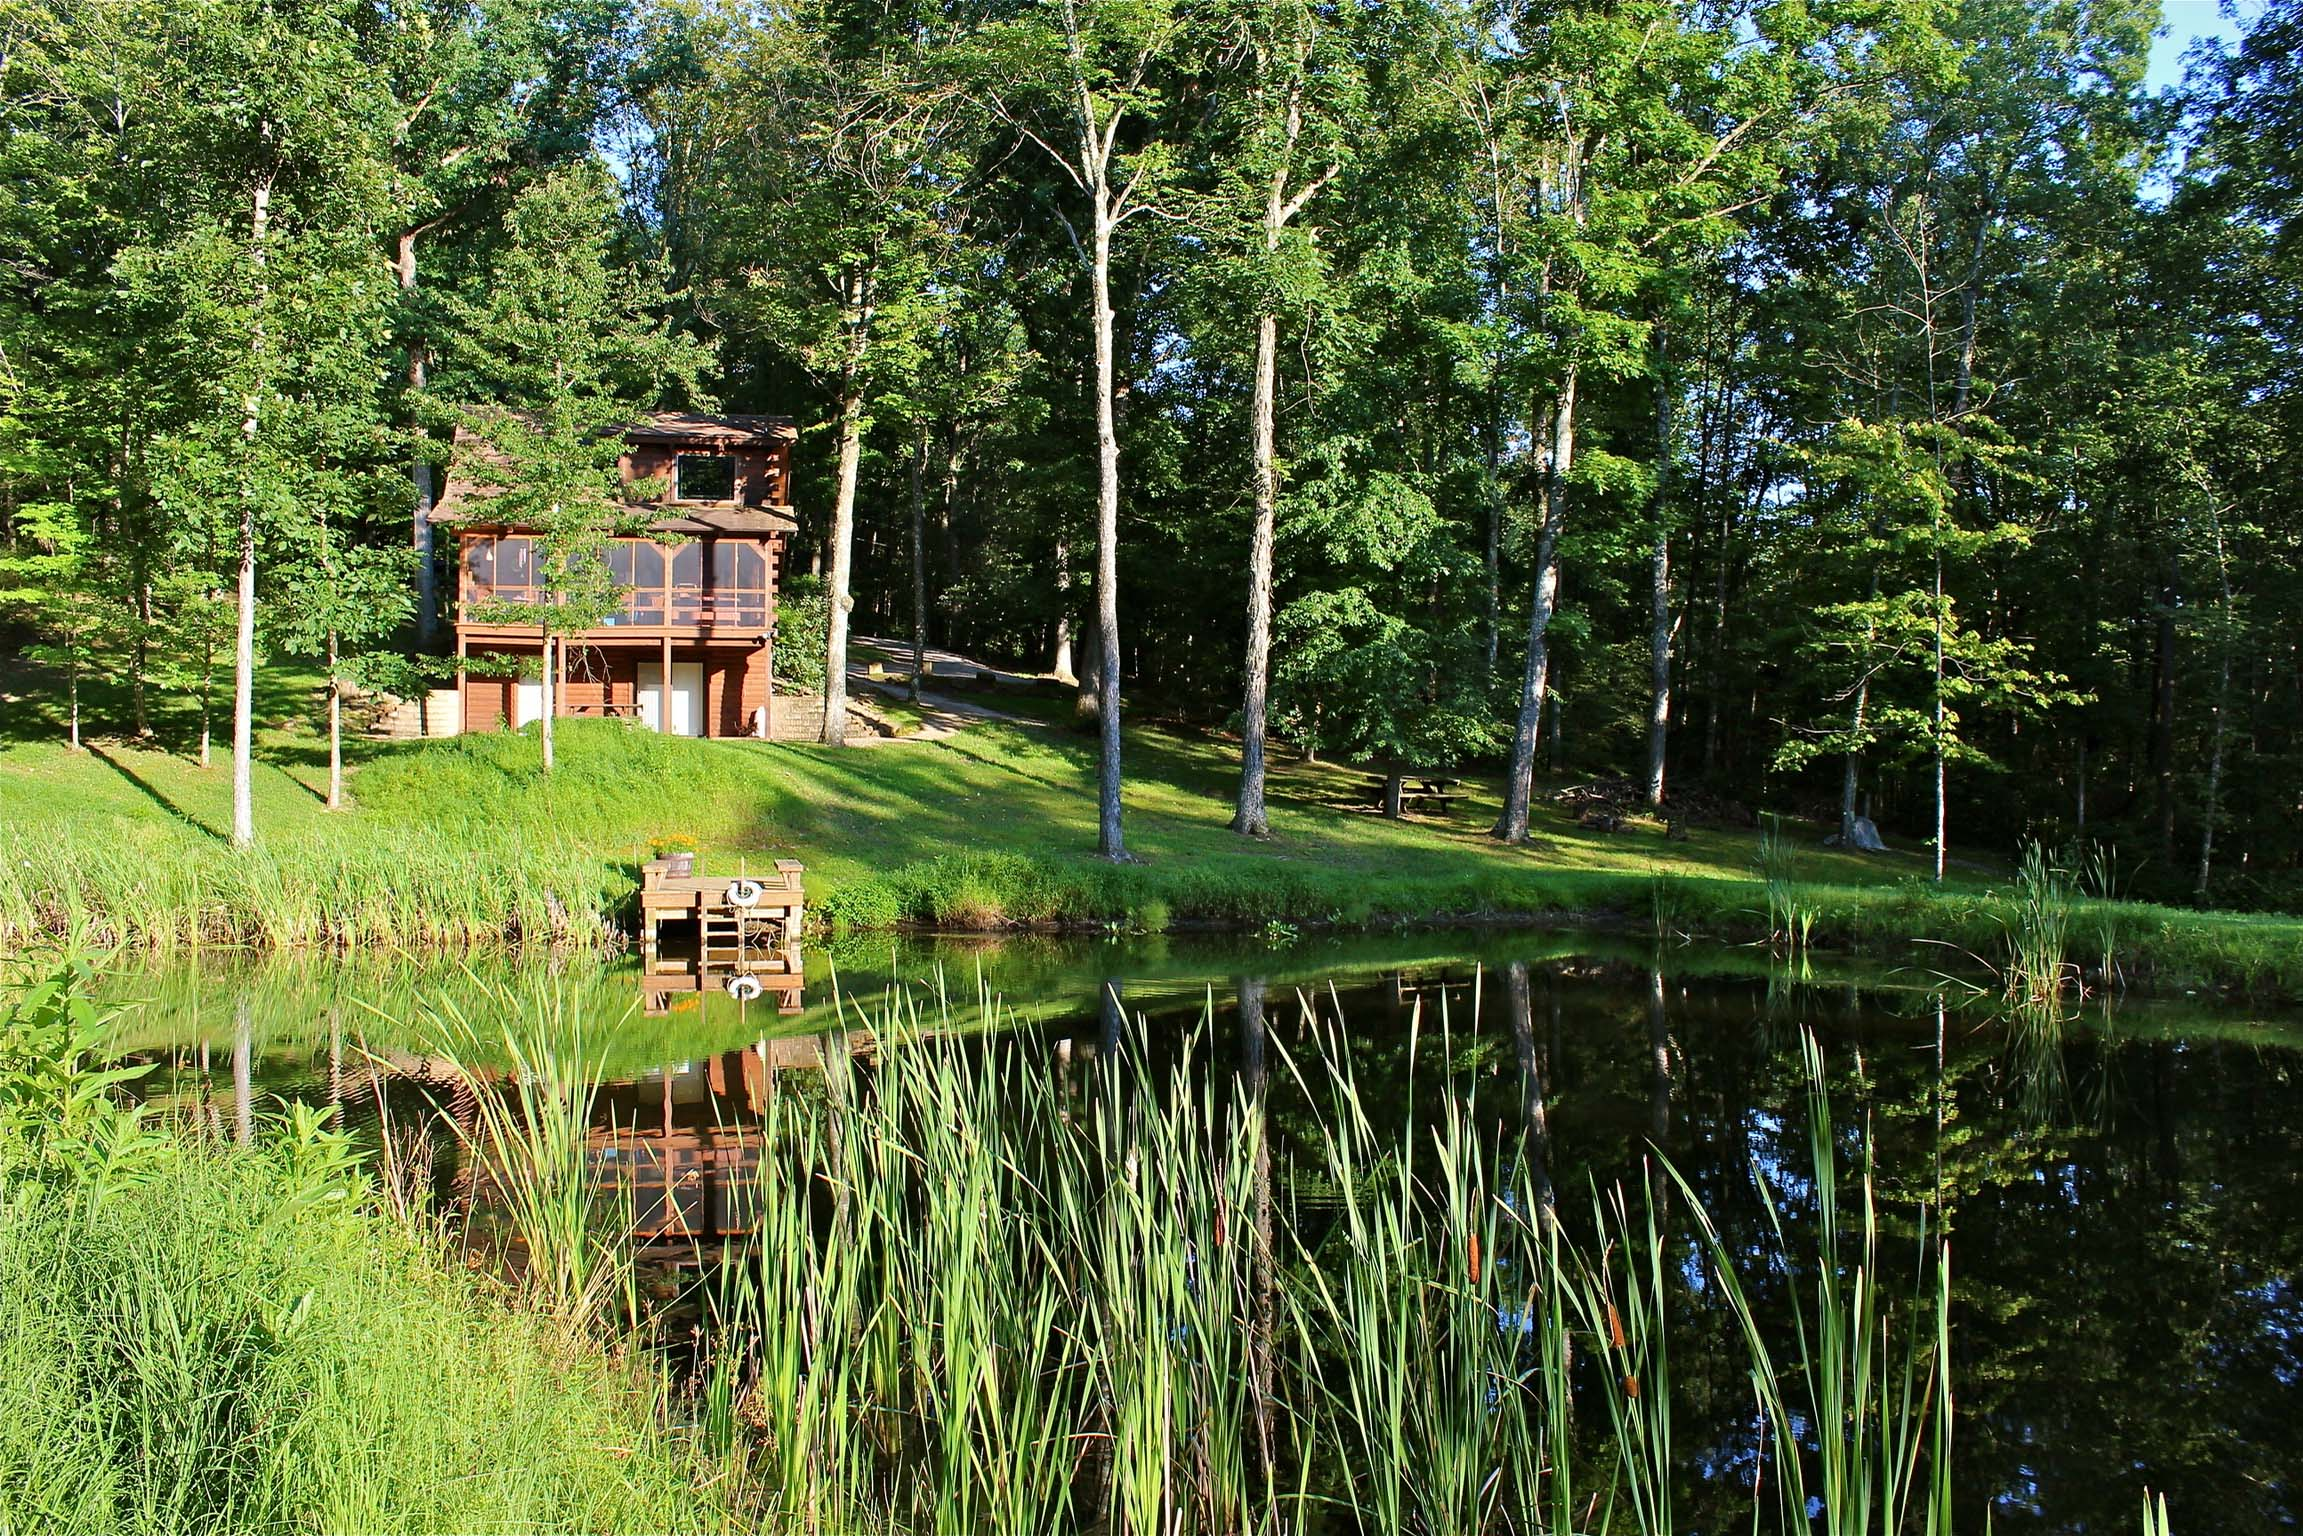 The Blue Jay Cabin - The stunning Blue Jay log cabin also has a stocked pond.  Catch and release fish or just enjoy sights and sounds of this beautiful water feature from the back screened-in deck.  A nearby fire ring is stock with free firewood for your convenience.